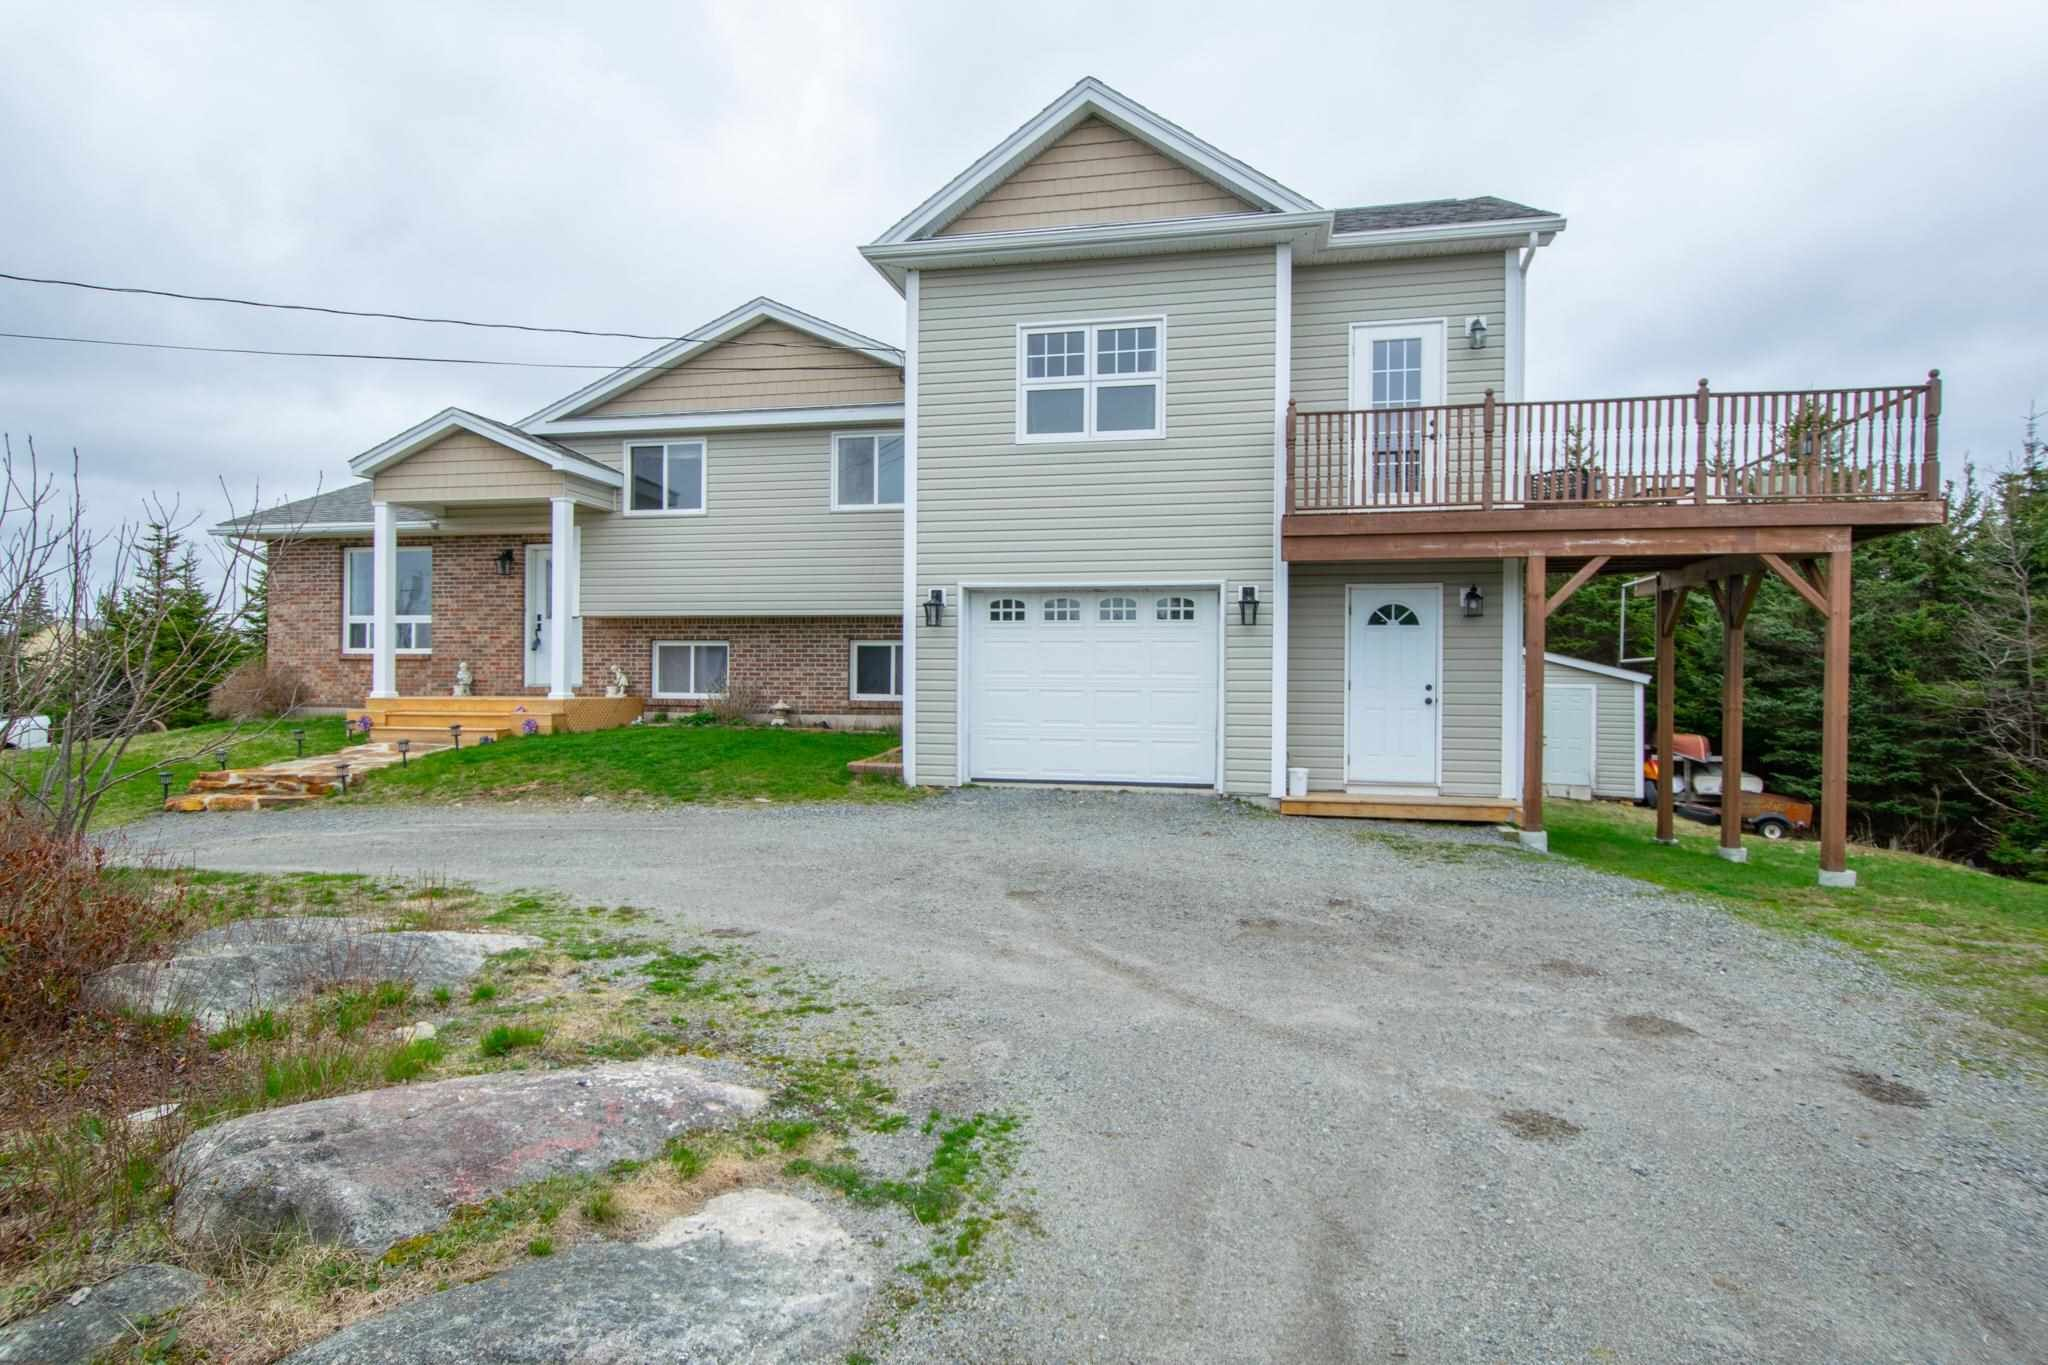 Main Photo: 29 First Pond Drive in Ketch Harbour: 9-Harrietsfield, Sambr And Halibut Bay Residential for sale (Halifax-Dartmouth)  : MLS®# 202110284